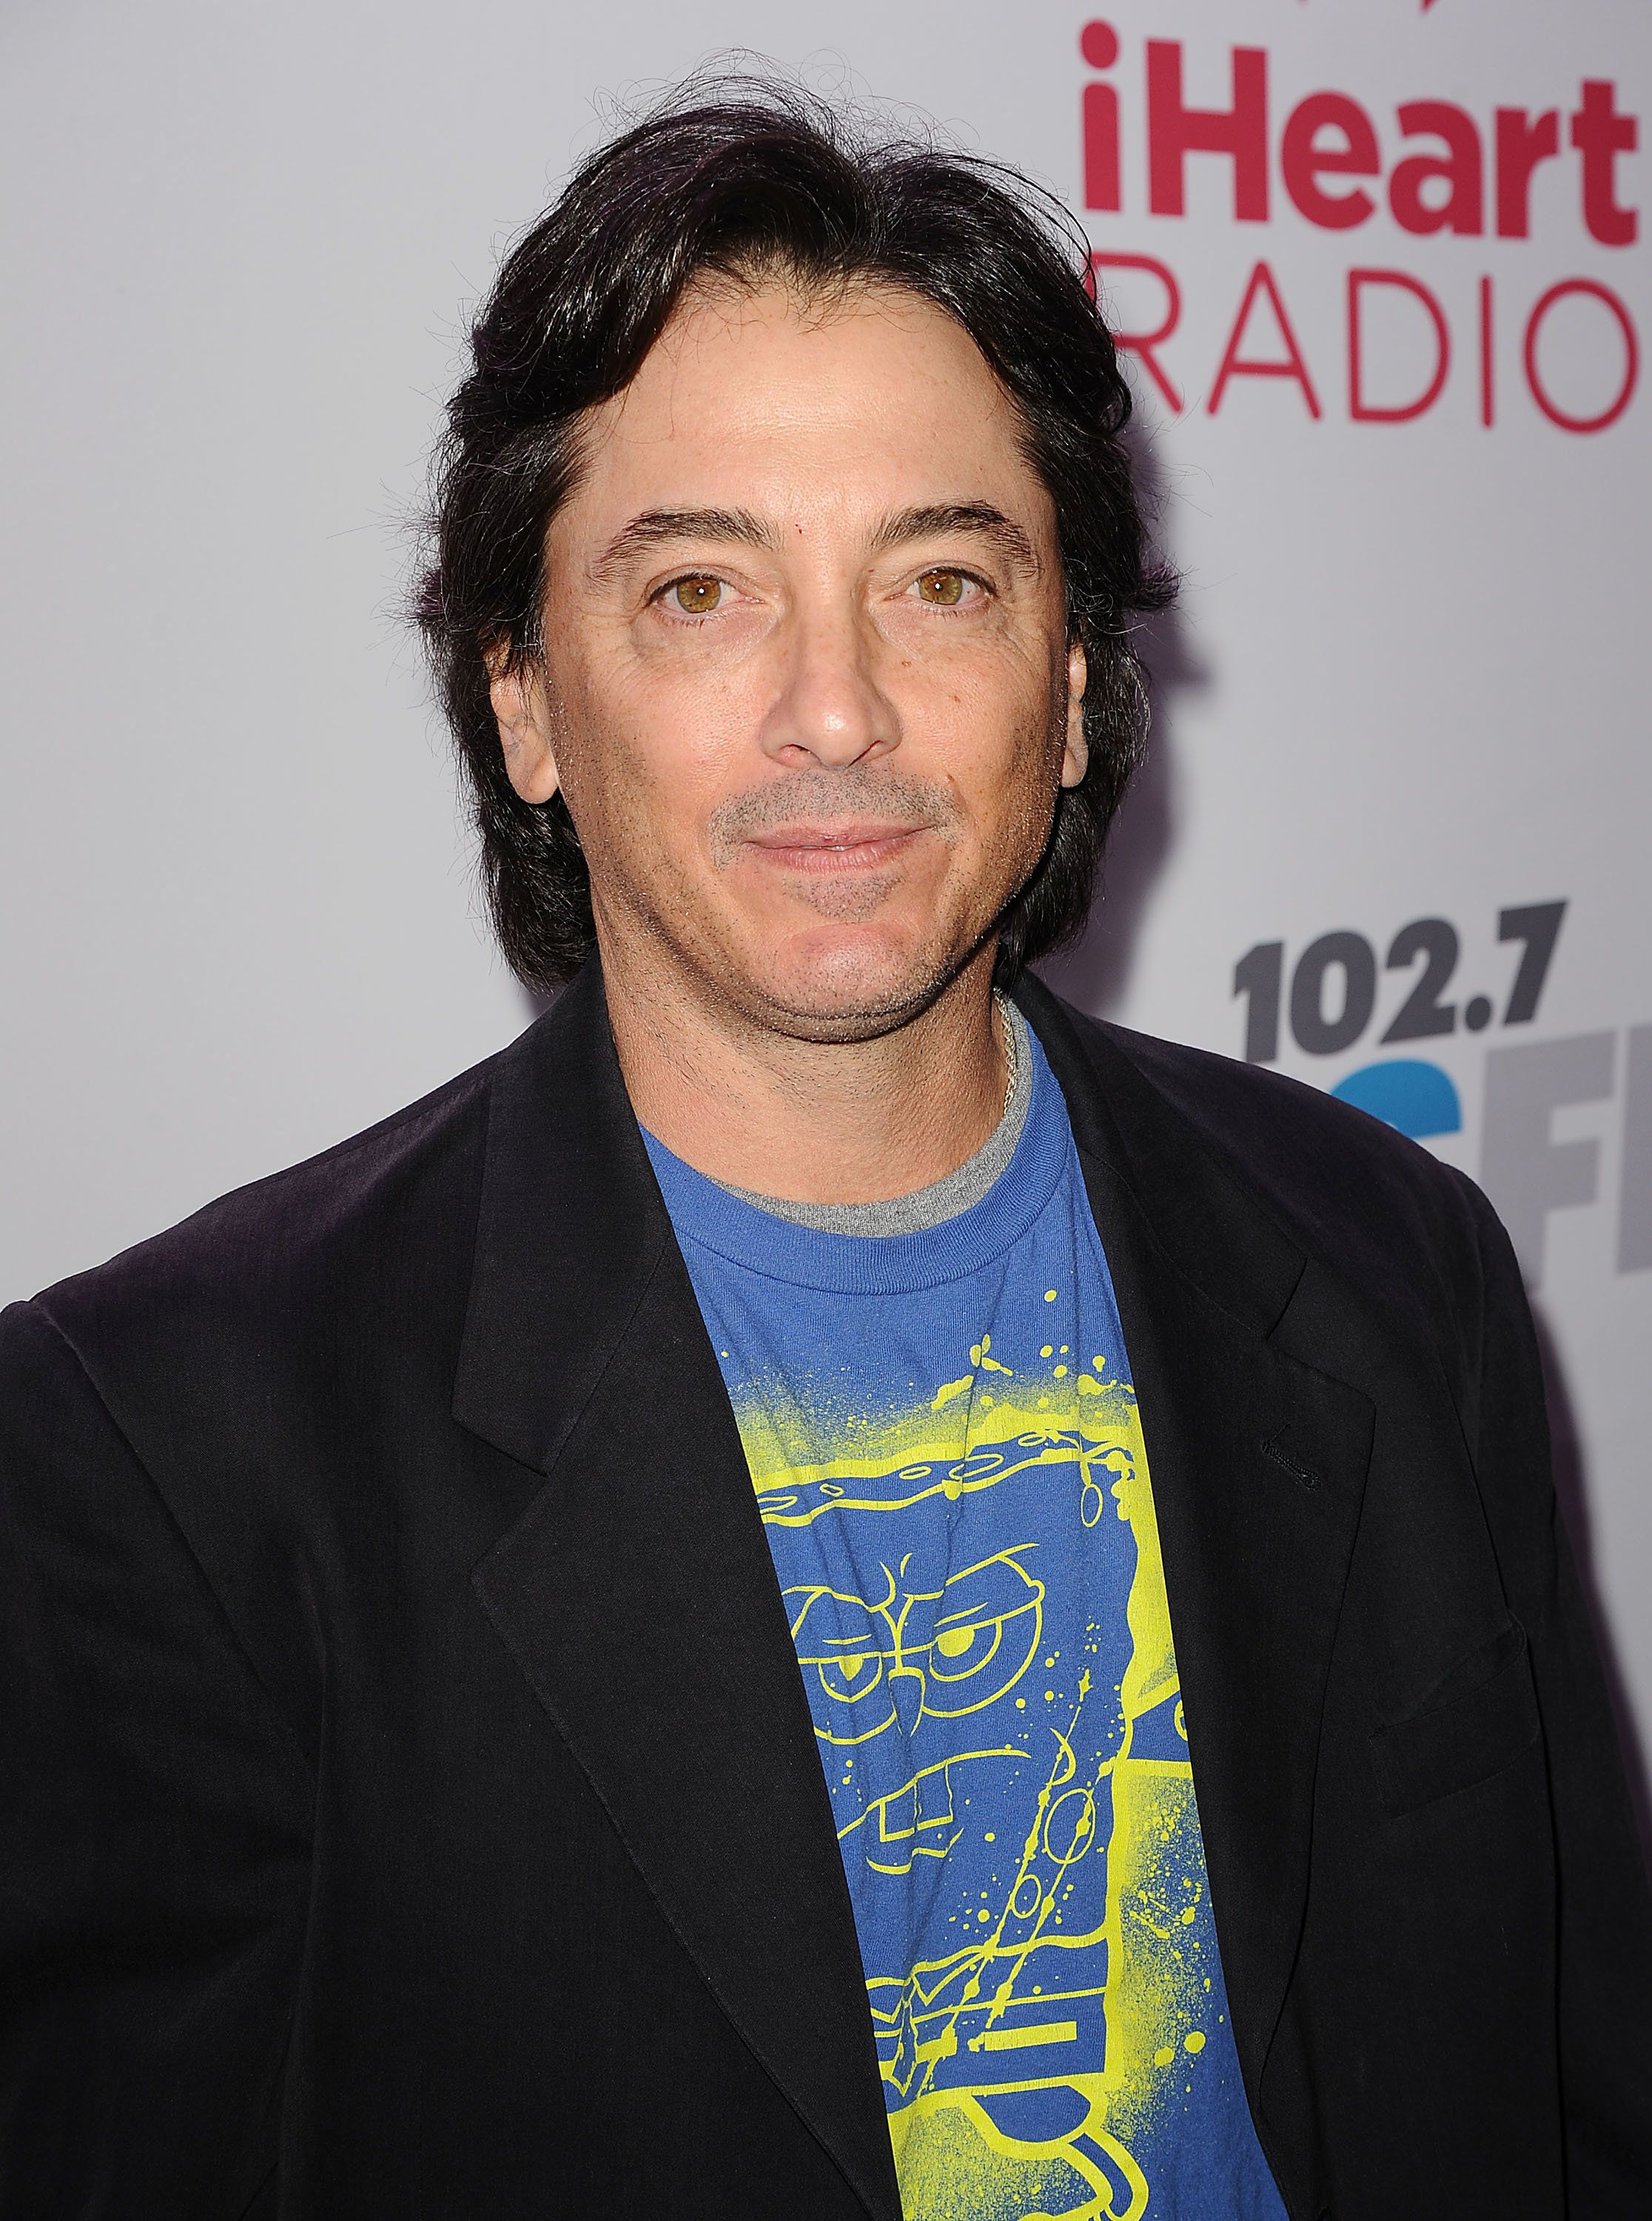 LOS ANGELES, CA - DECEMBER 06:  Actor Scott Baio attends KIIS FM's Jingle Ball at Staples Center on December 6, 2013 in Los Angeles, California.  (Photo by Jason LaVeris/FilmMagic)